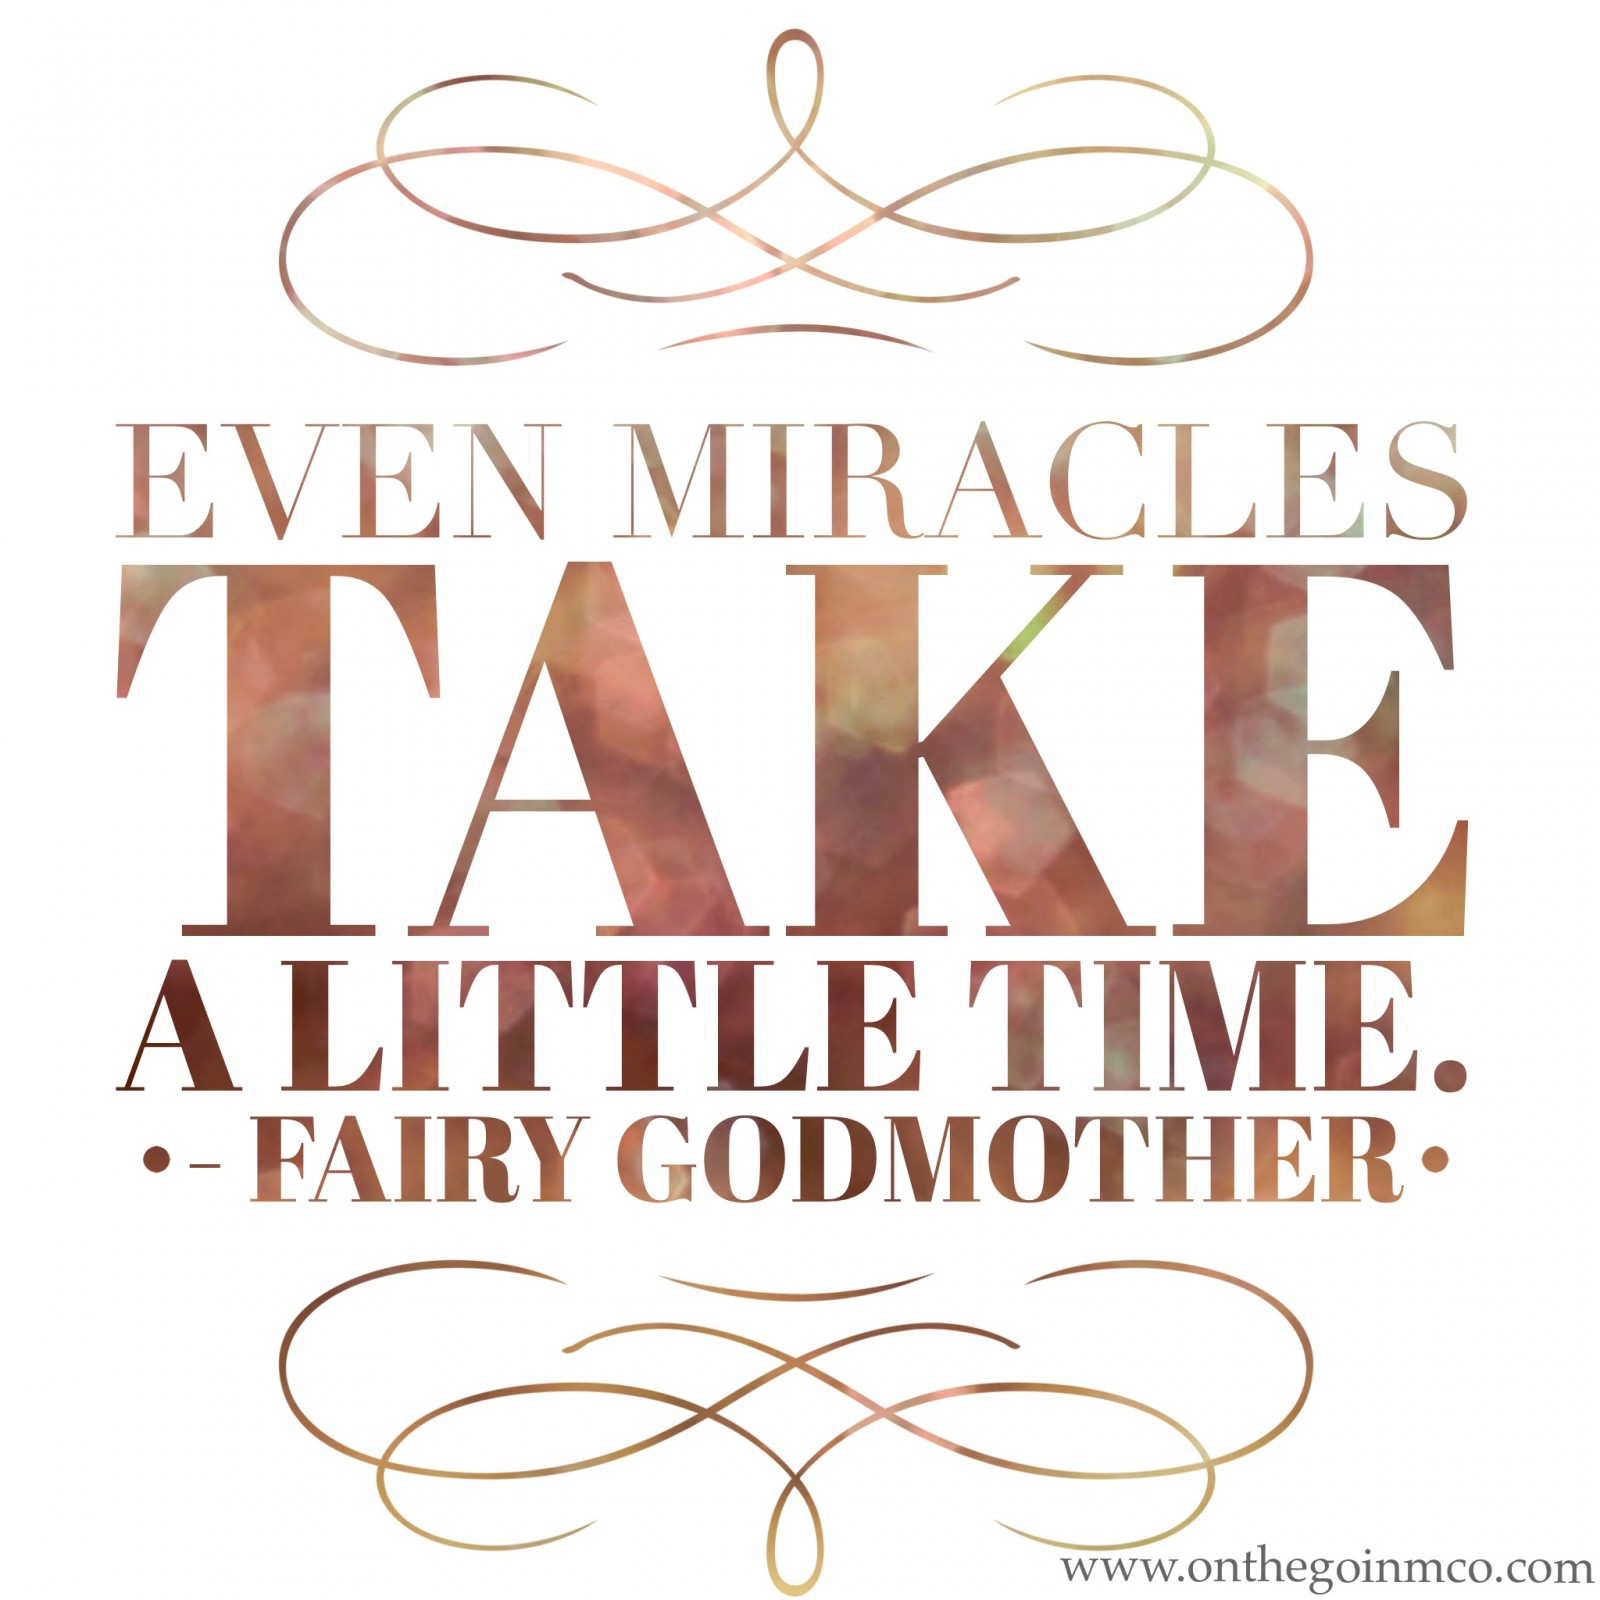 Disney Movie Quotes After a long week Fairy Godmother Cinderella